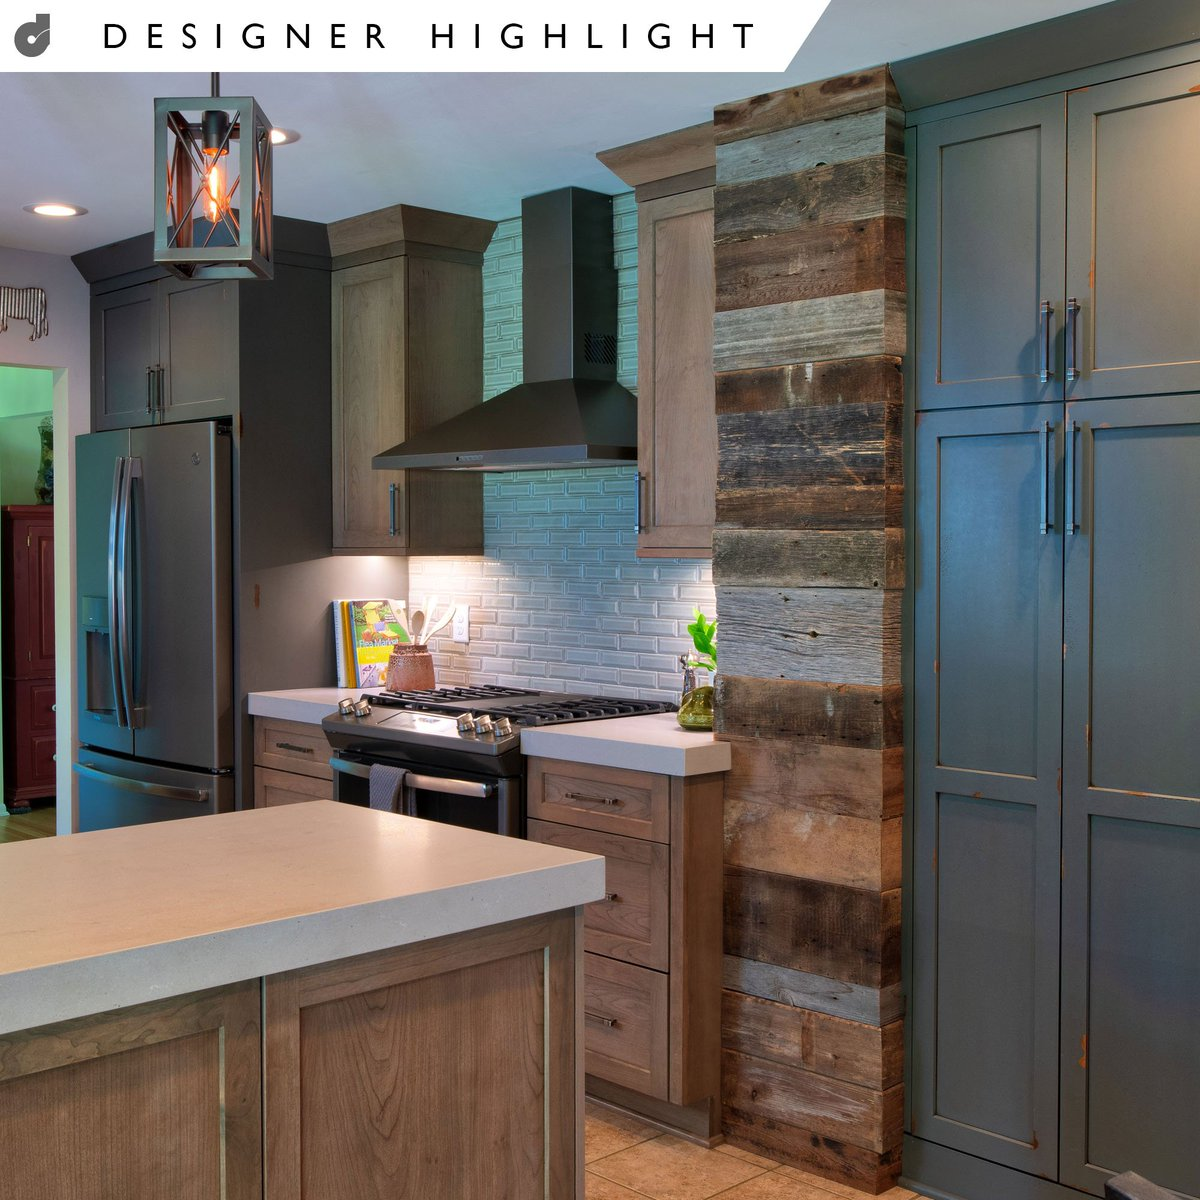 ... Weeku0027s Featured Dura Supreme Kitchen Design Is By Designer Claire  Hinrichs Of Mingle, Plymouth, MN. Photography By Scott Amundson Photography.